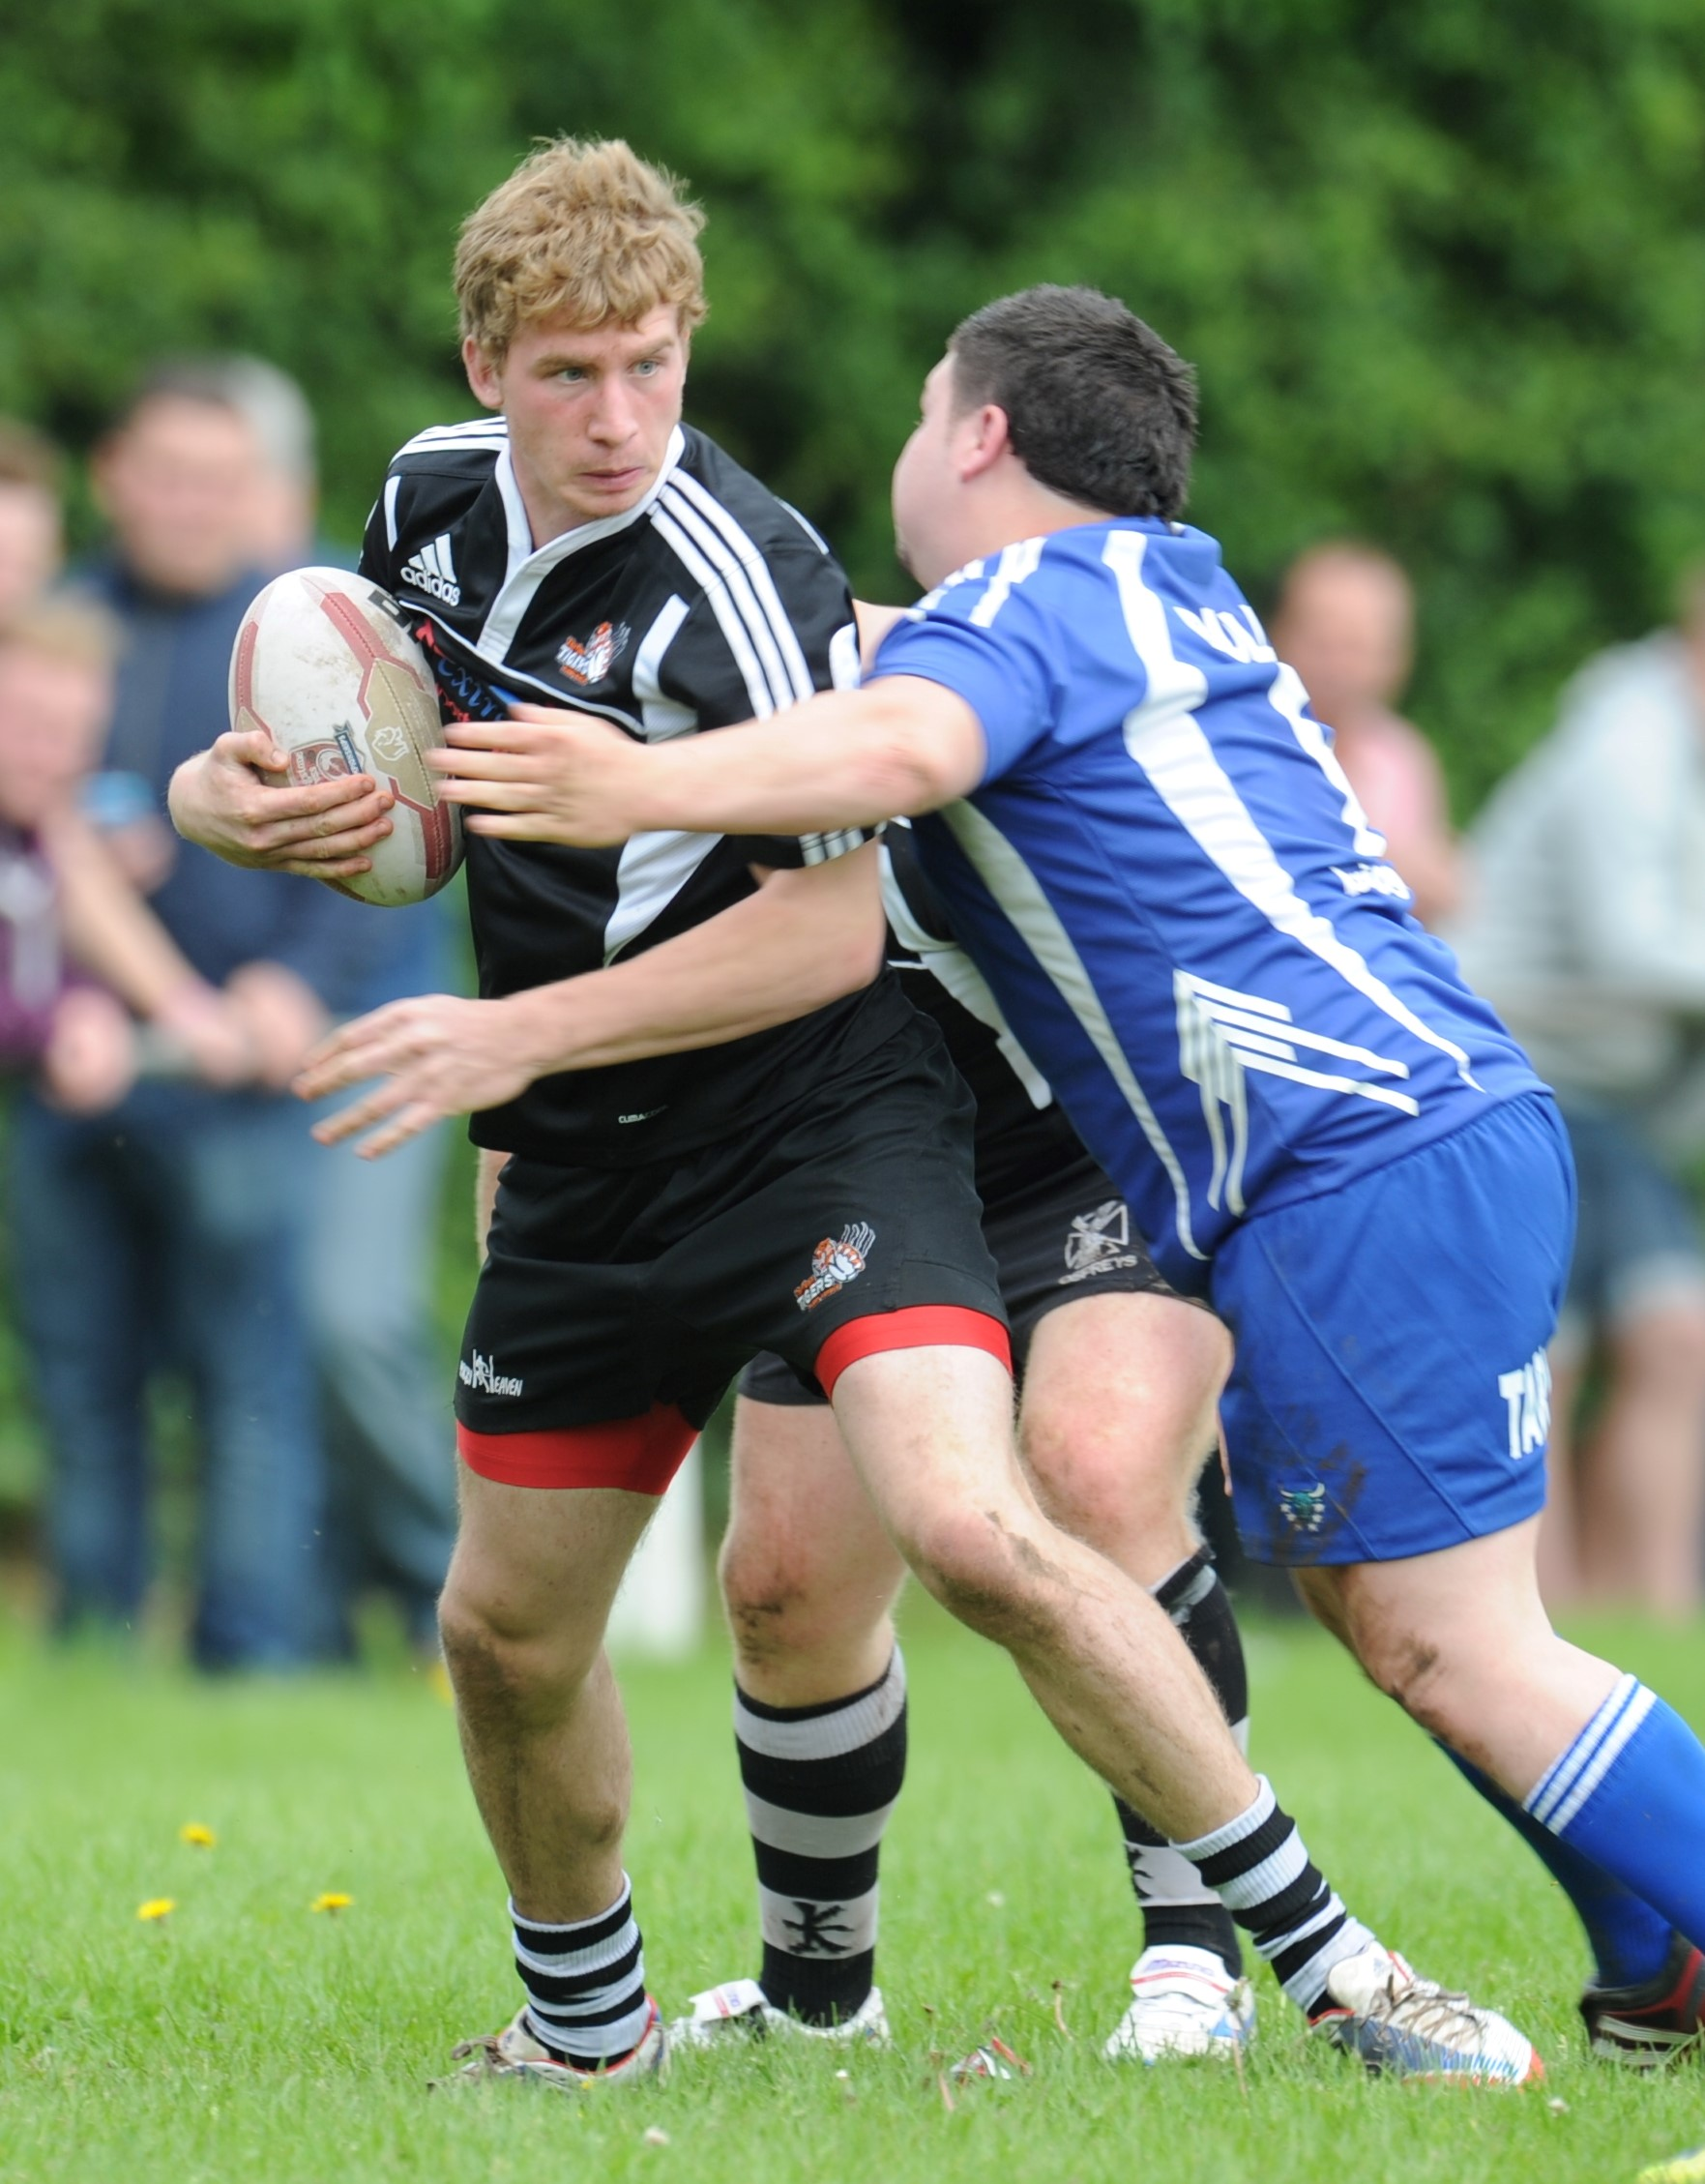 HEADING DOWN UNDER: Torfaen Tigers' Liam Silver